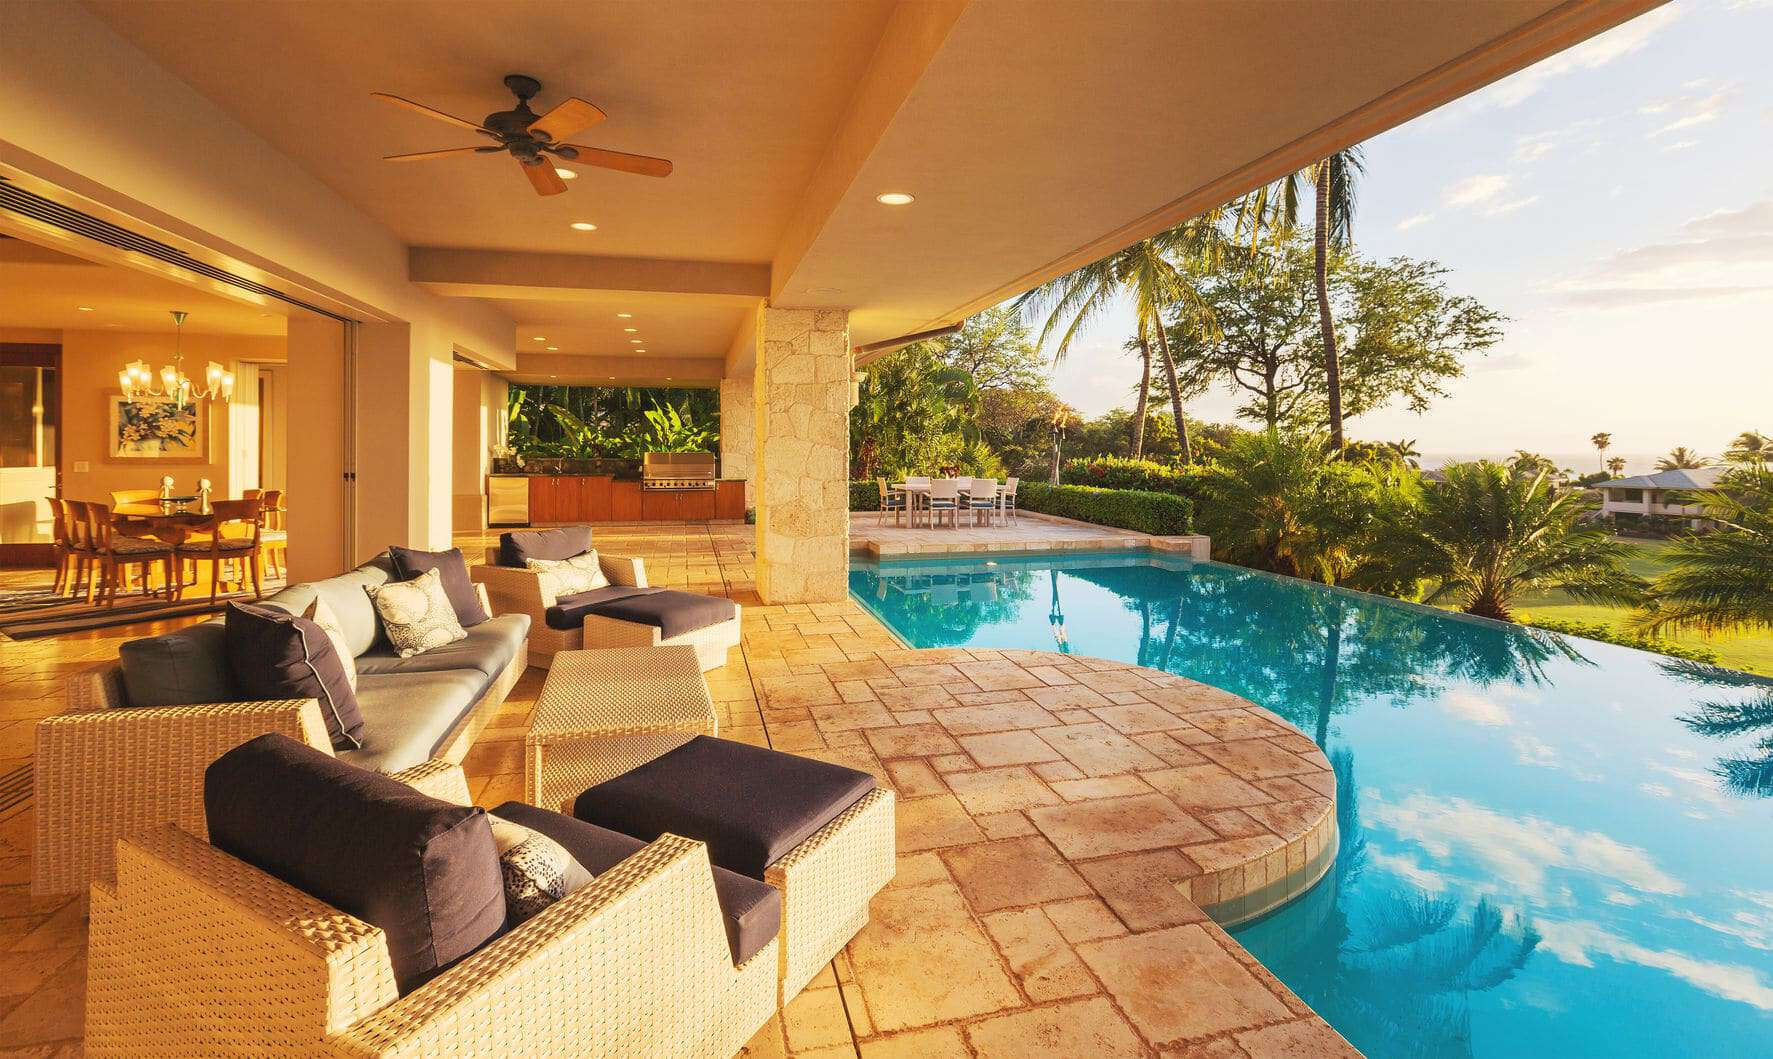 Brea real estate homes with pools